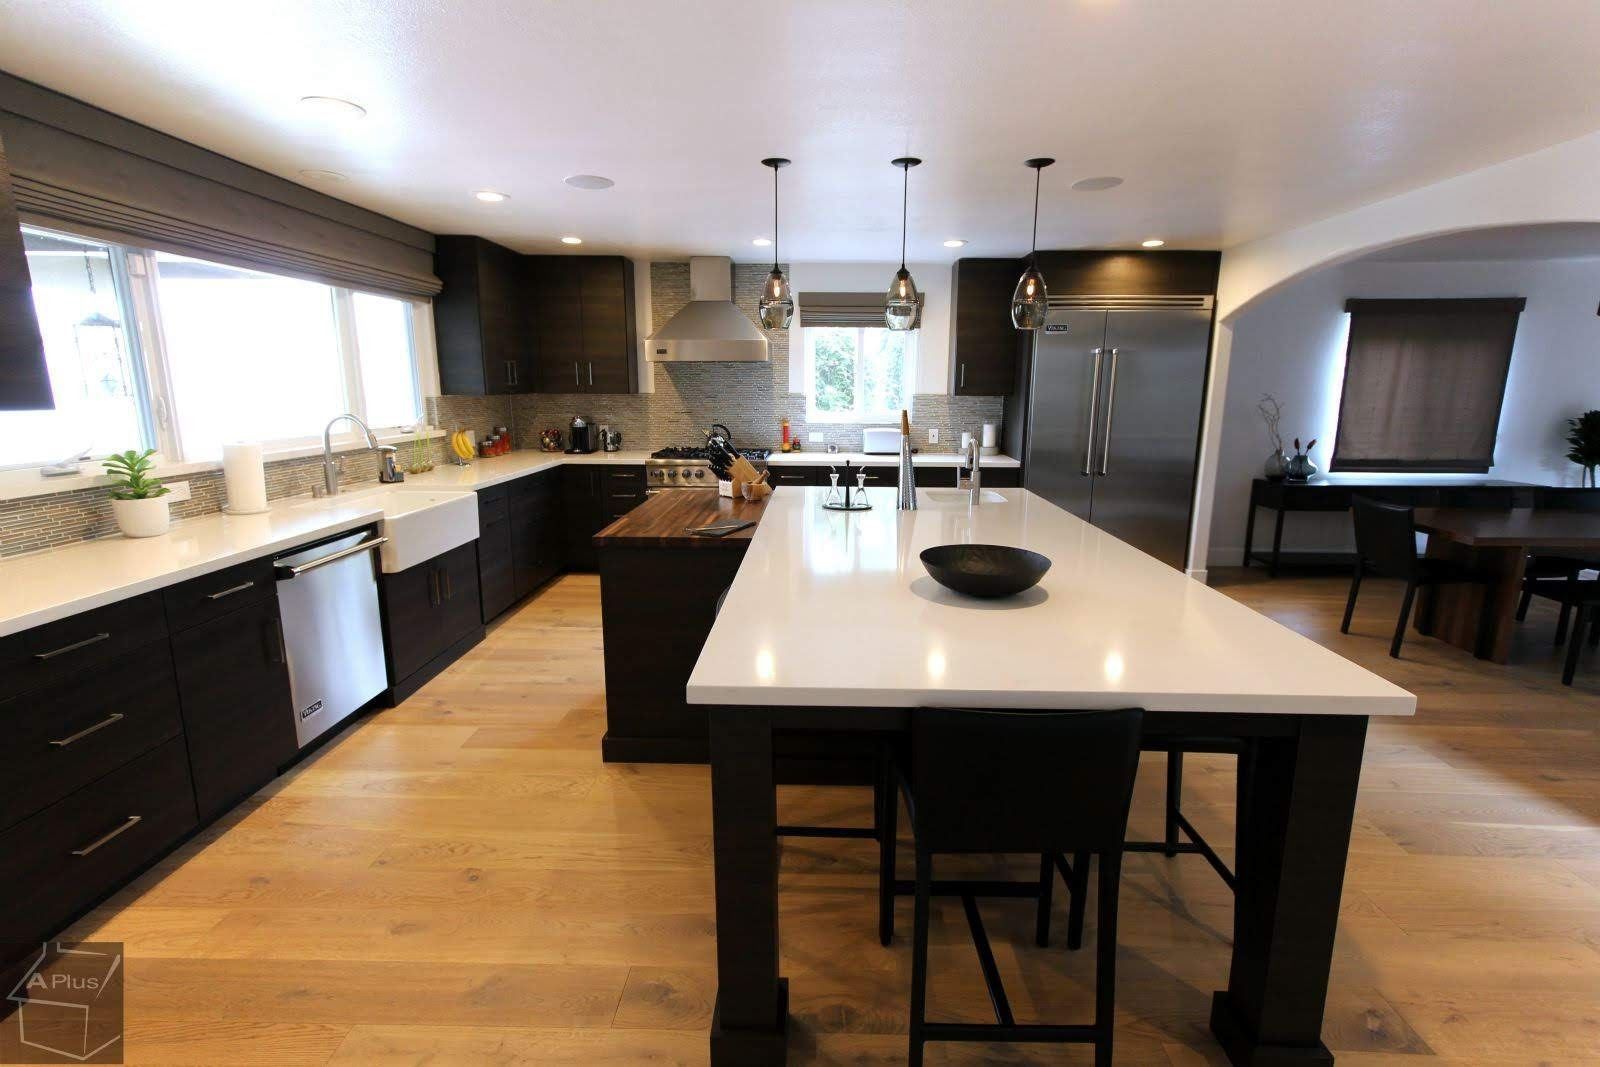 Long Beach Modern Contemporary Style Sophia Cabinets Kitchen Remodel Kitchen Bathroom Remodel Kitchen Remodel Contemporary Kitchen Design